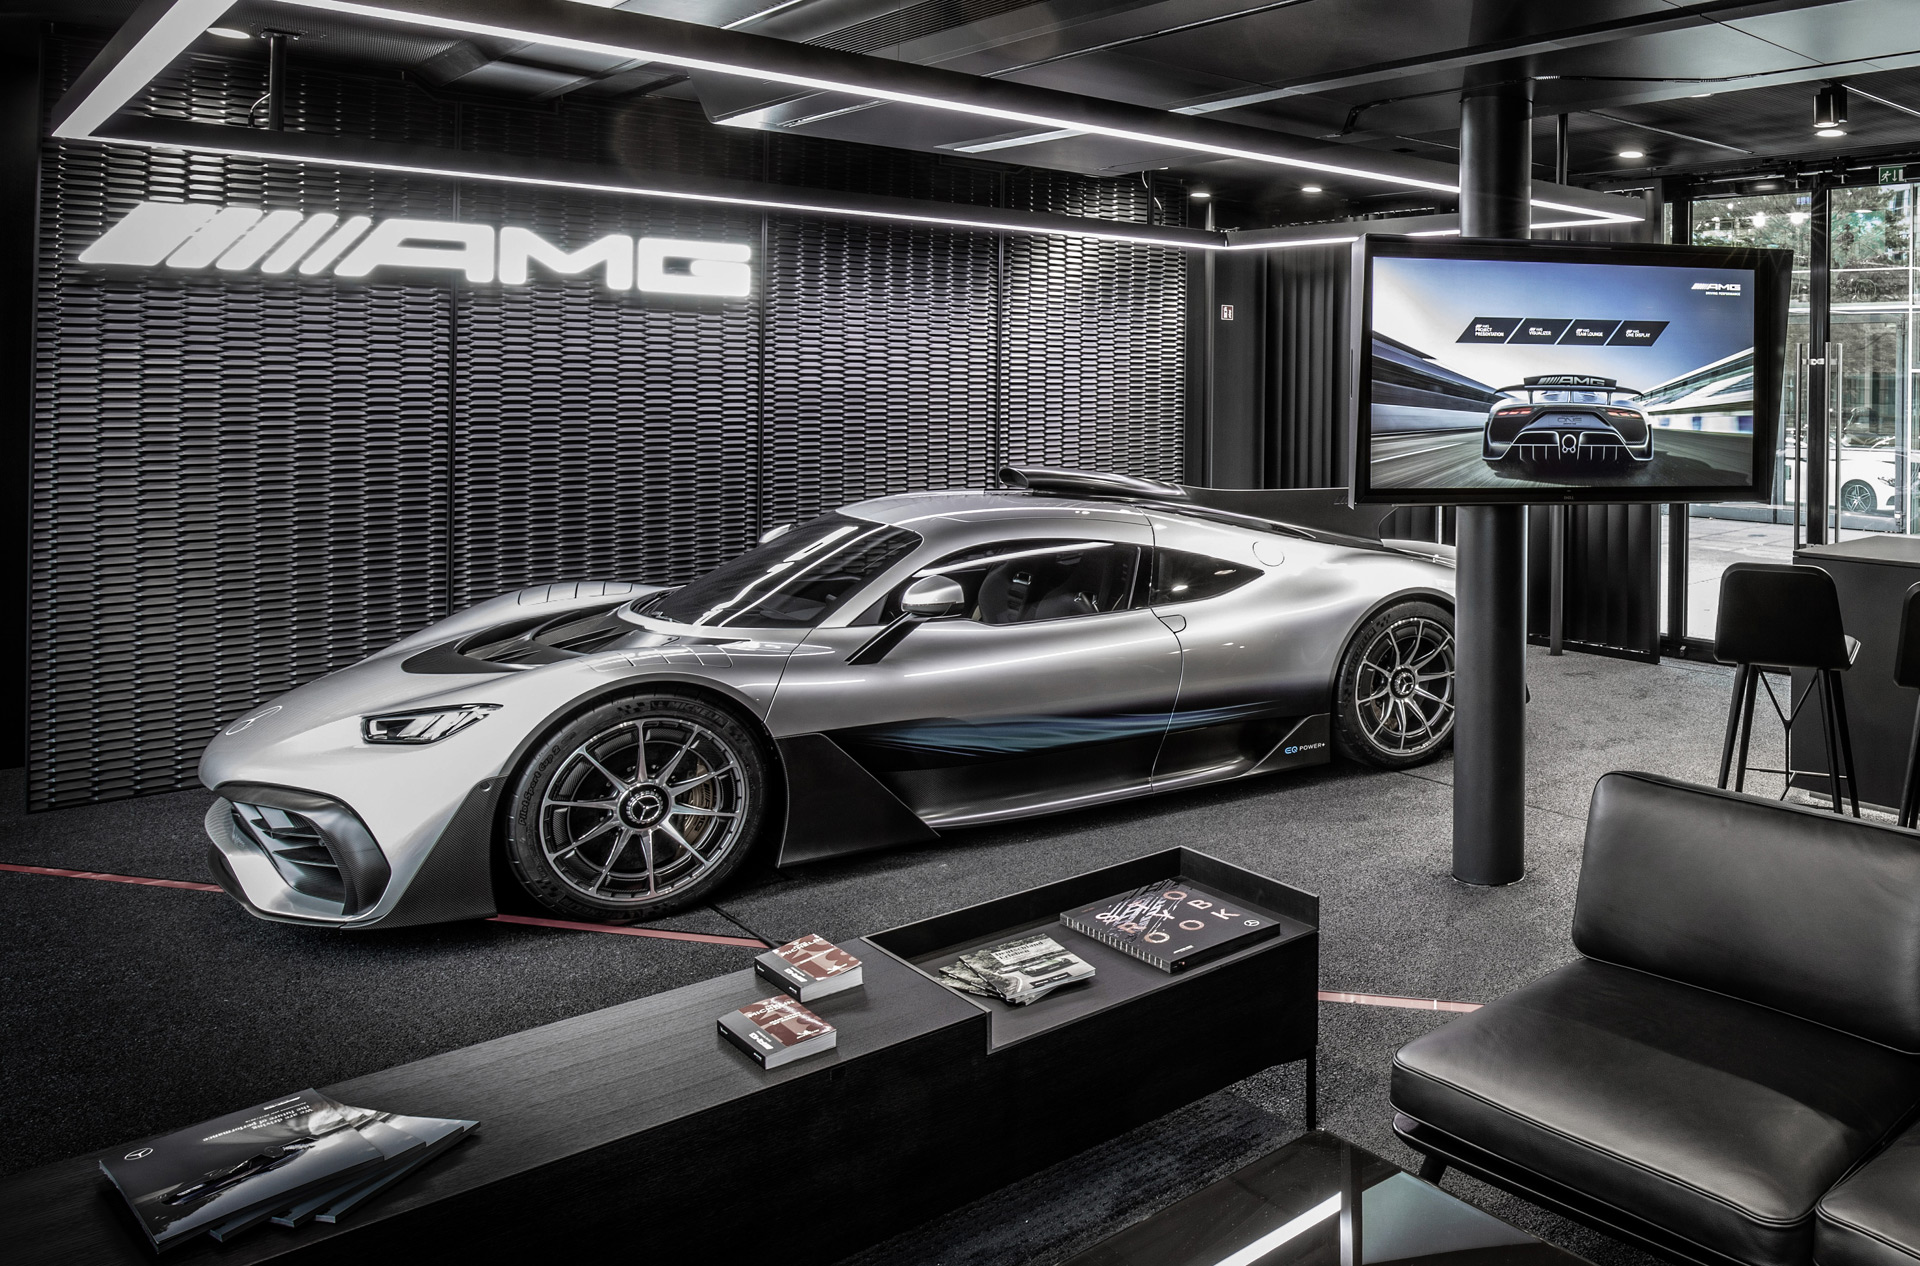 Mercedes AMG One Confirmed As Name Of F1 Powered Hypercar